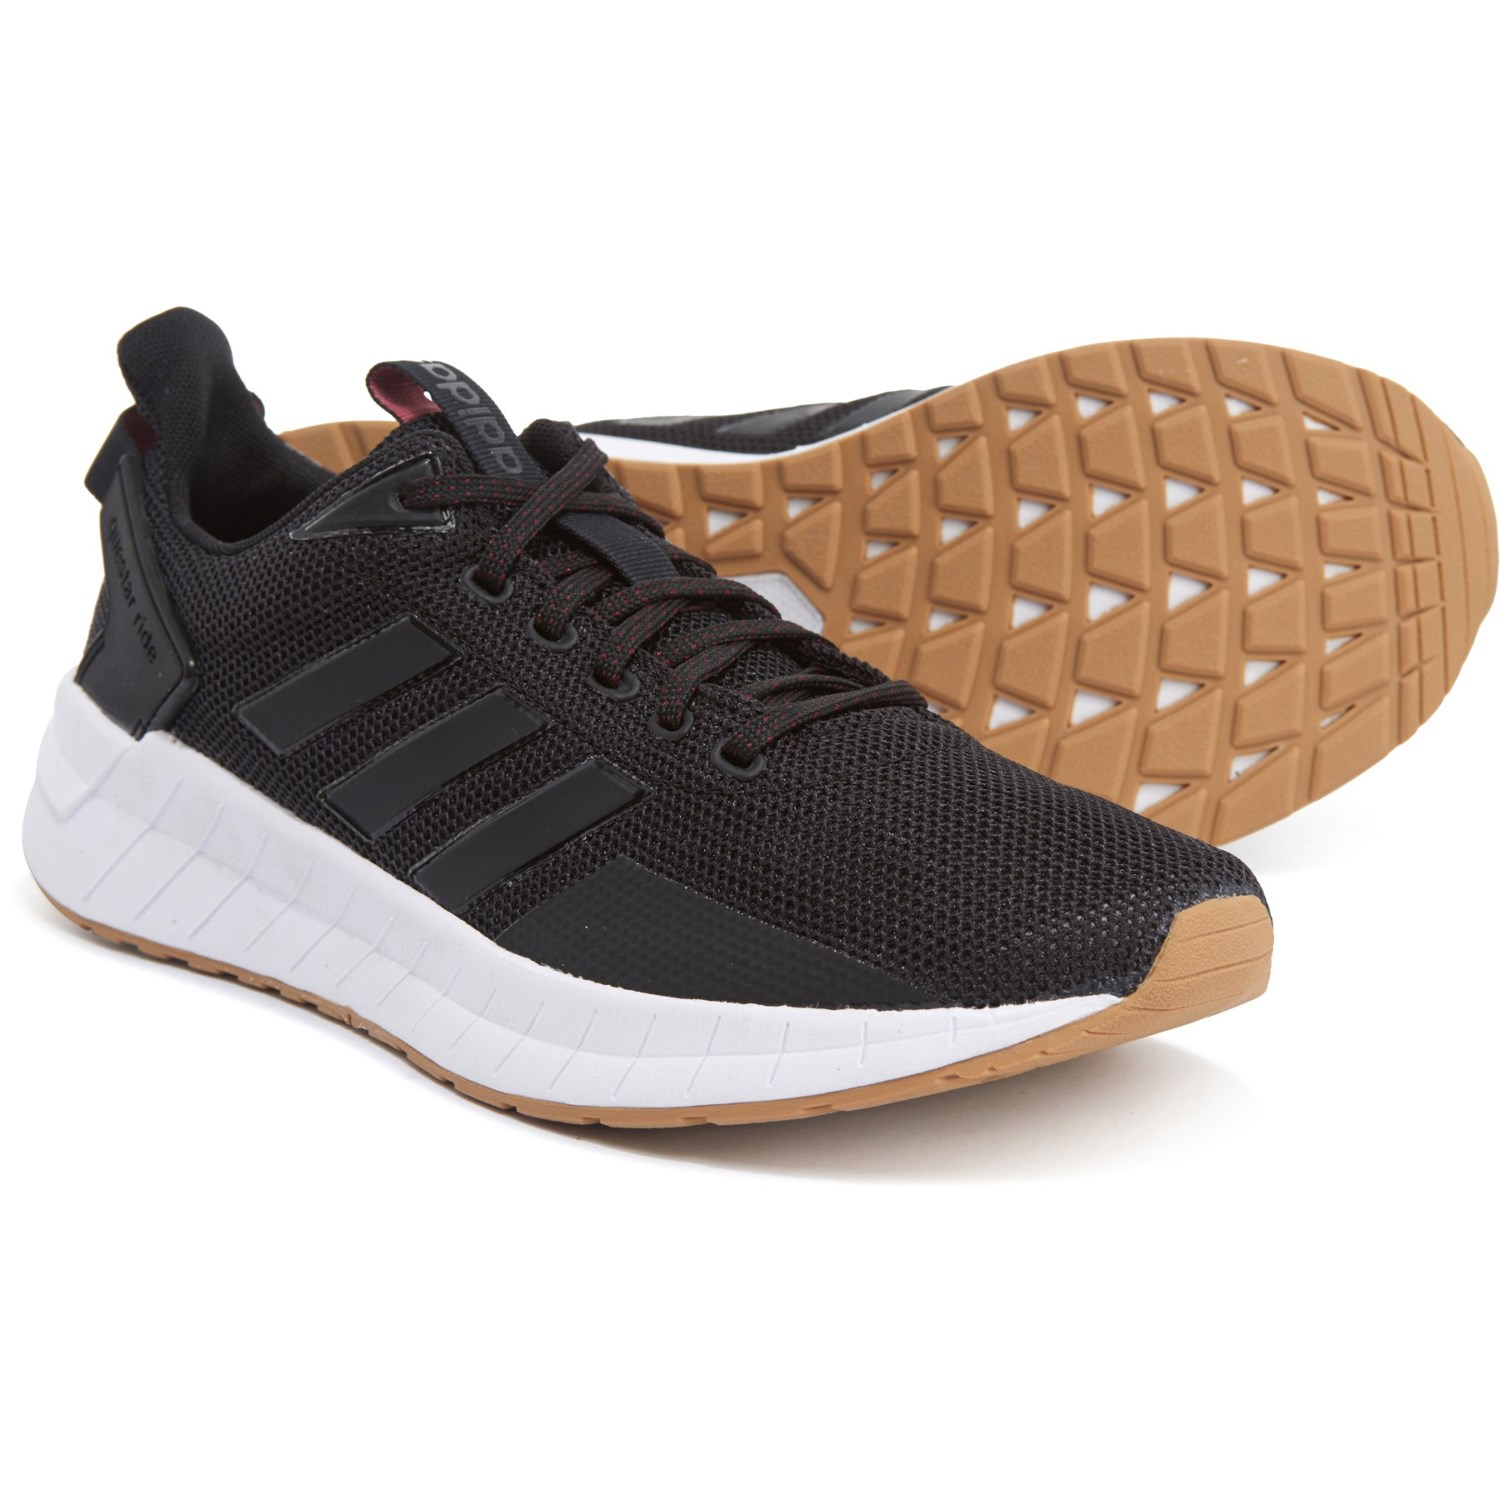 adidas Questar Ride Running Shoes (For Women)